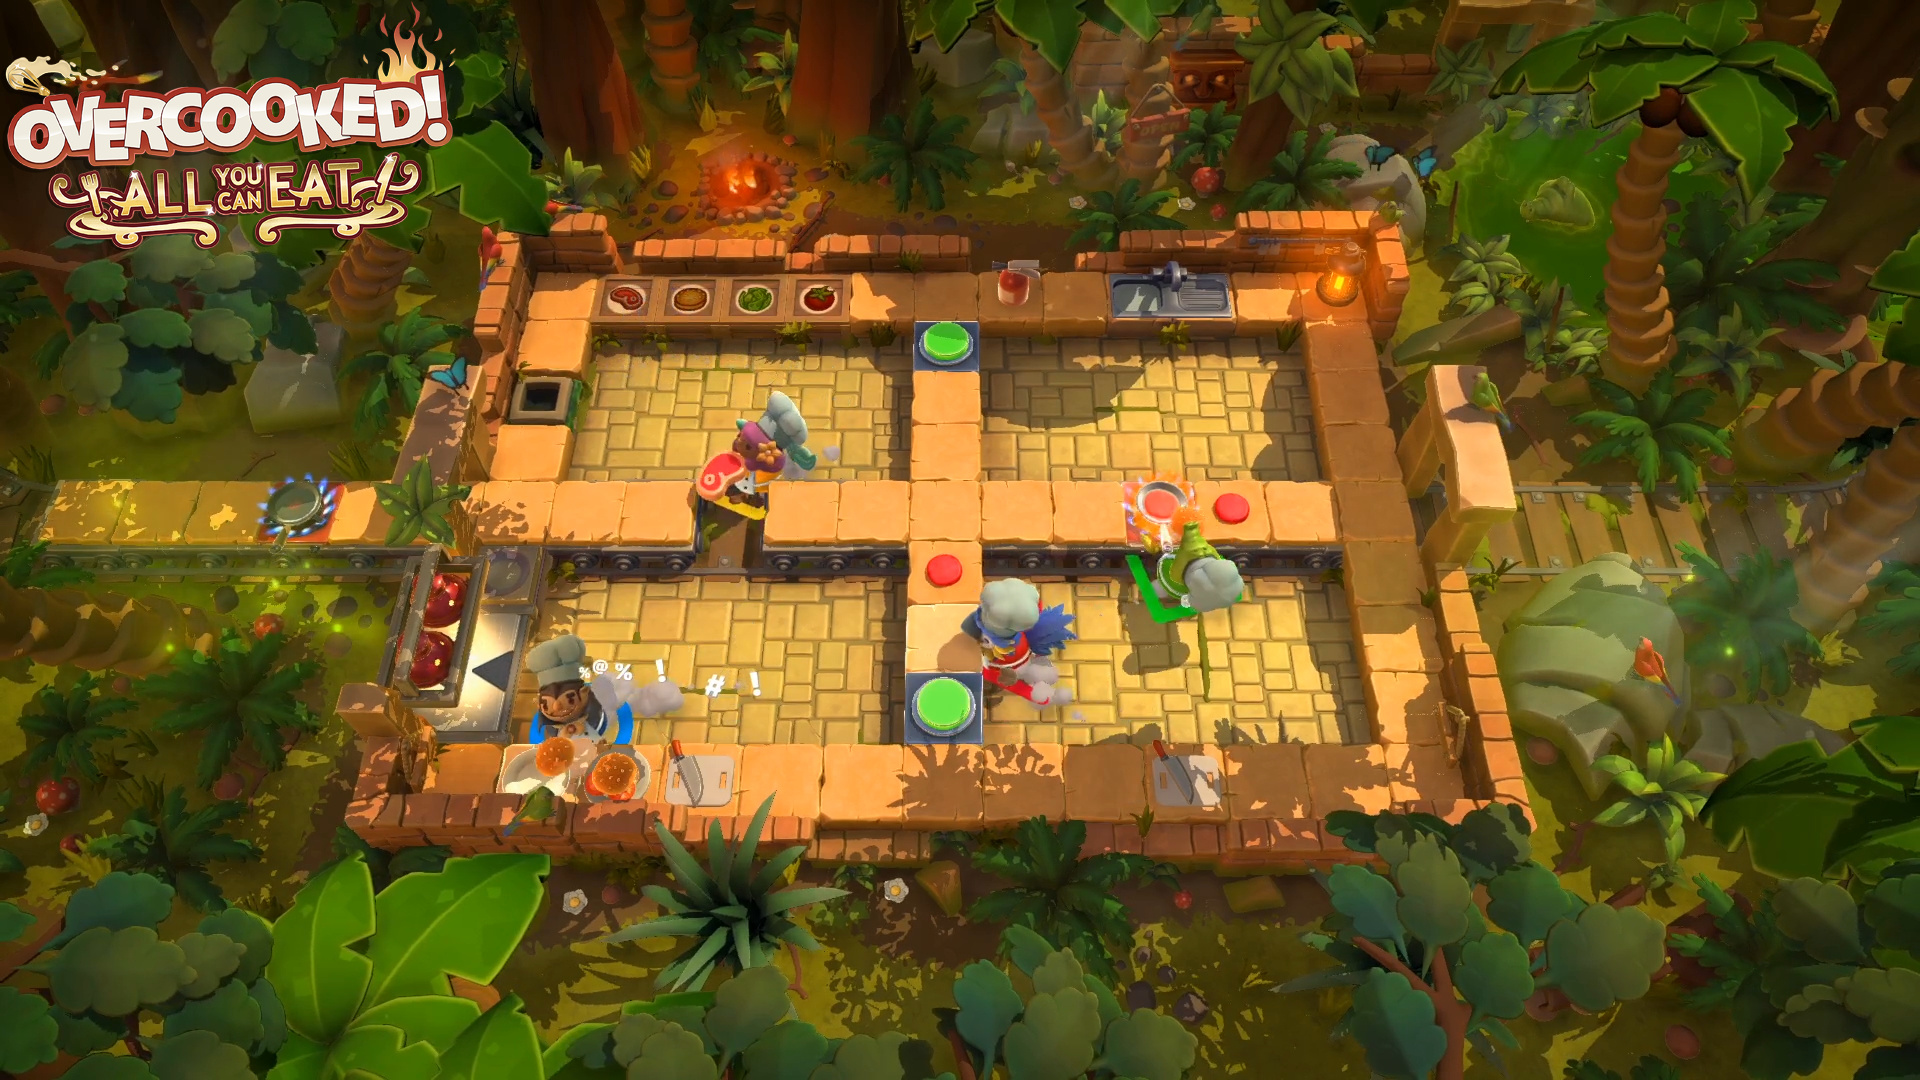 5056208808929 - Overcooked! All You Can Eat - Game-Outlet